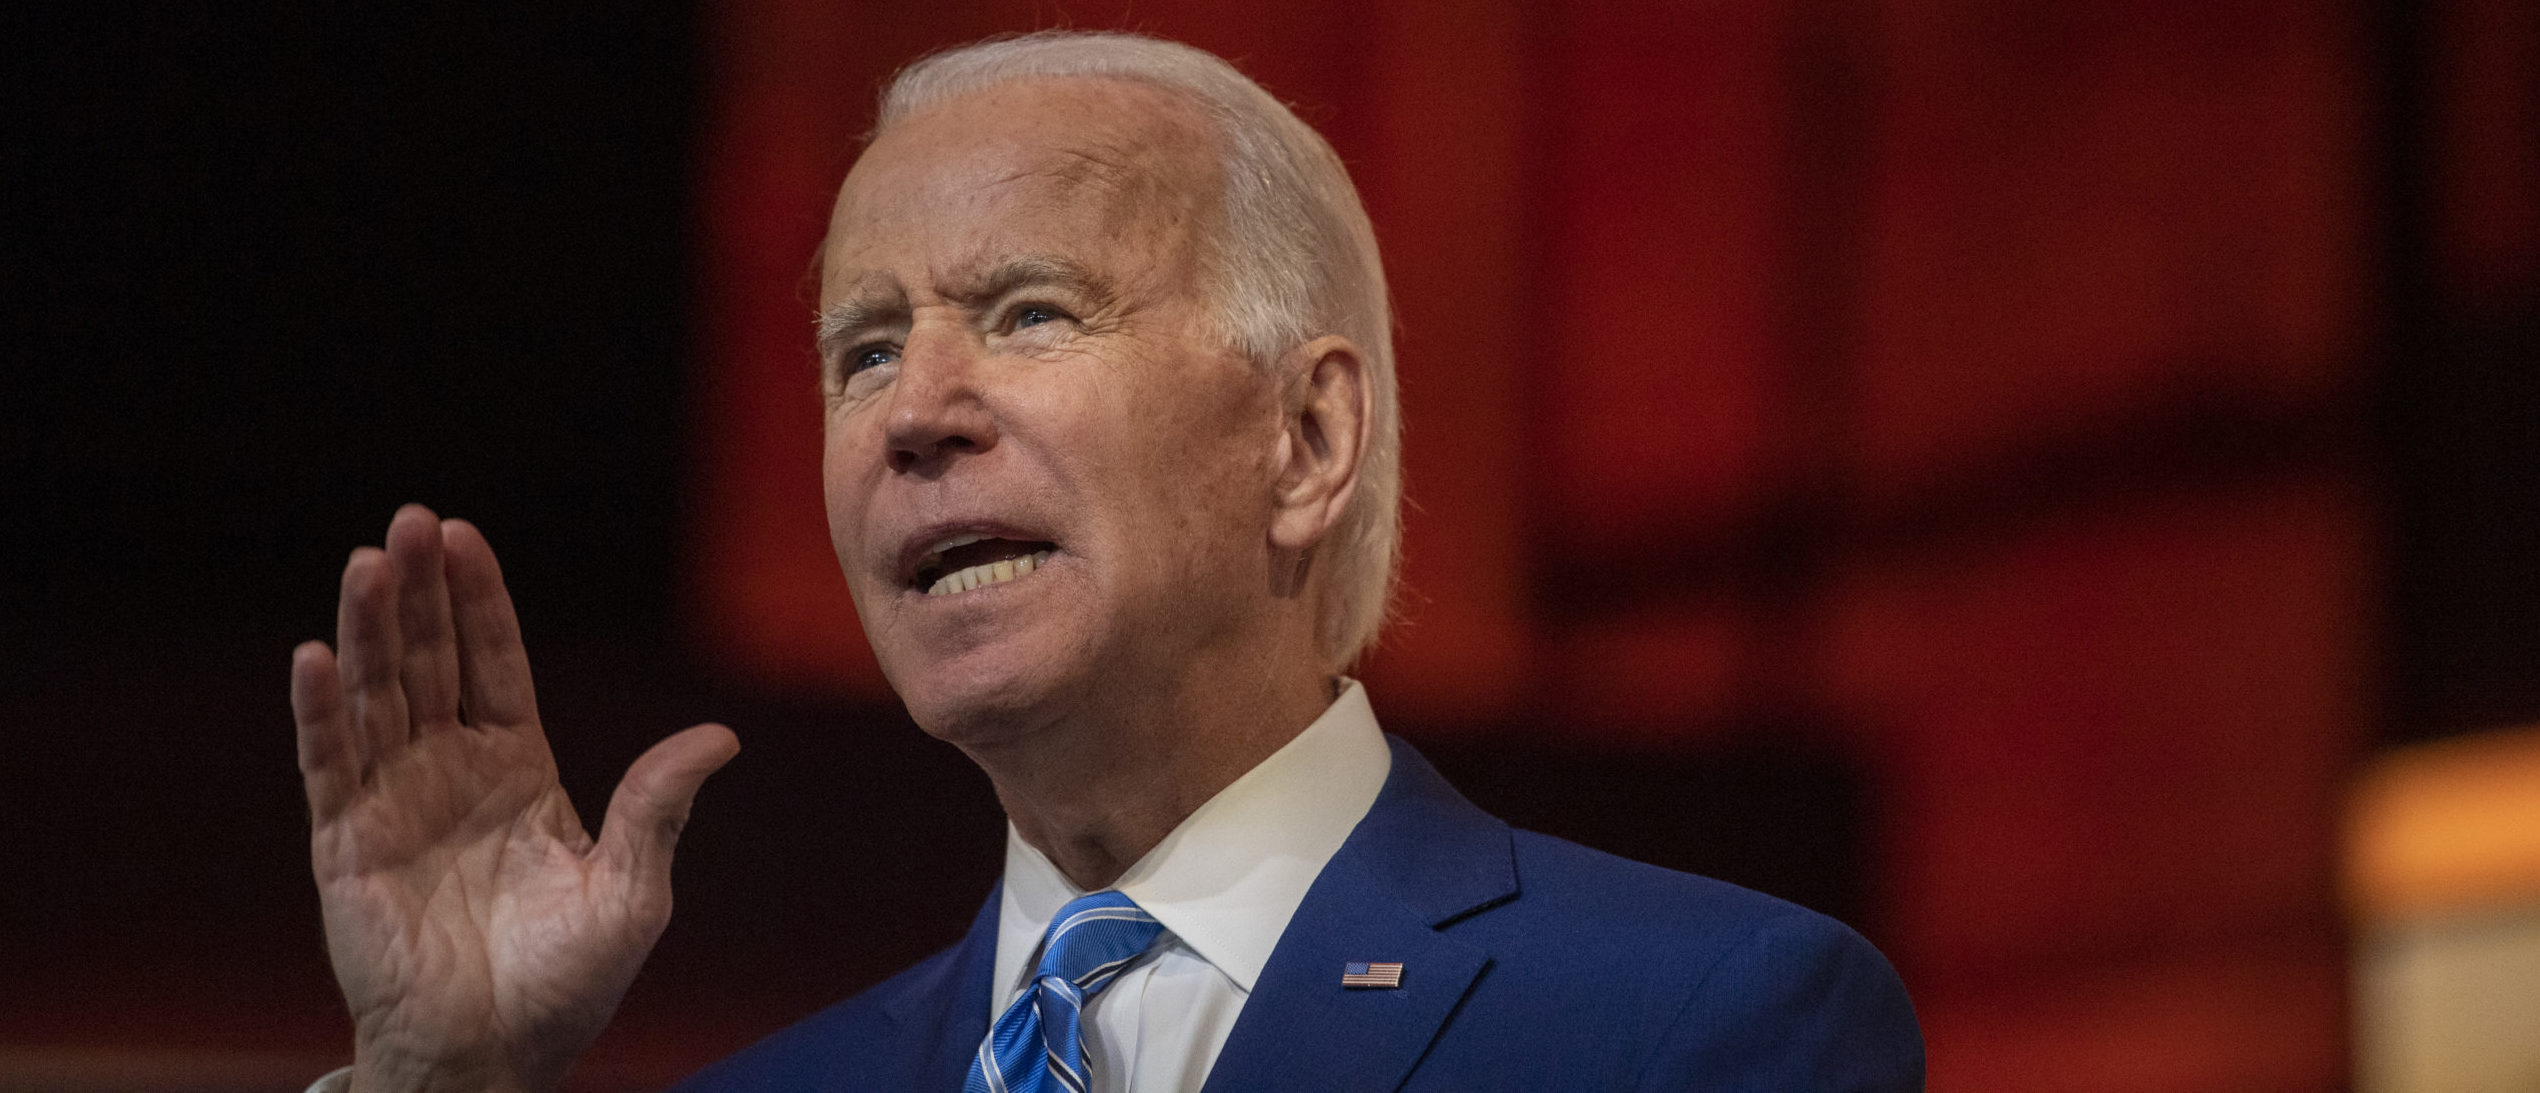 Several Now-Former CNN, NBC Analysts Are Going To Work For Biden After Networks Complained Of A 'Trump-Fox Revolving Door'